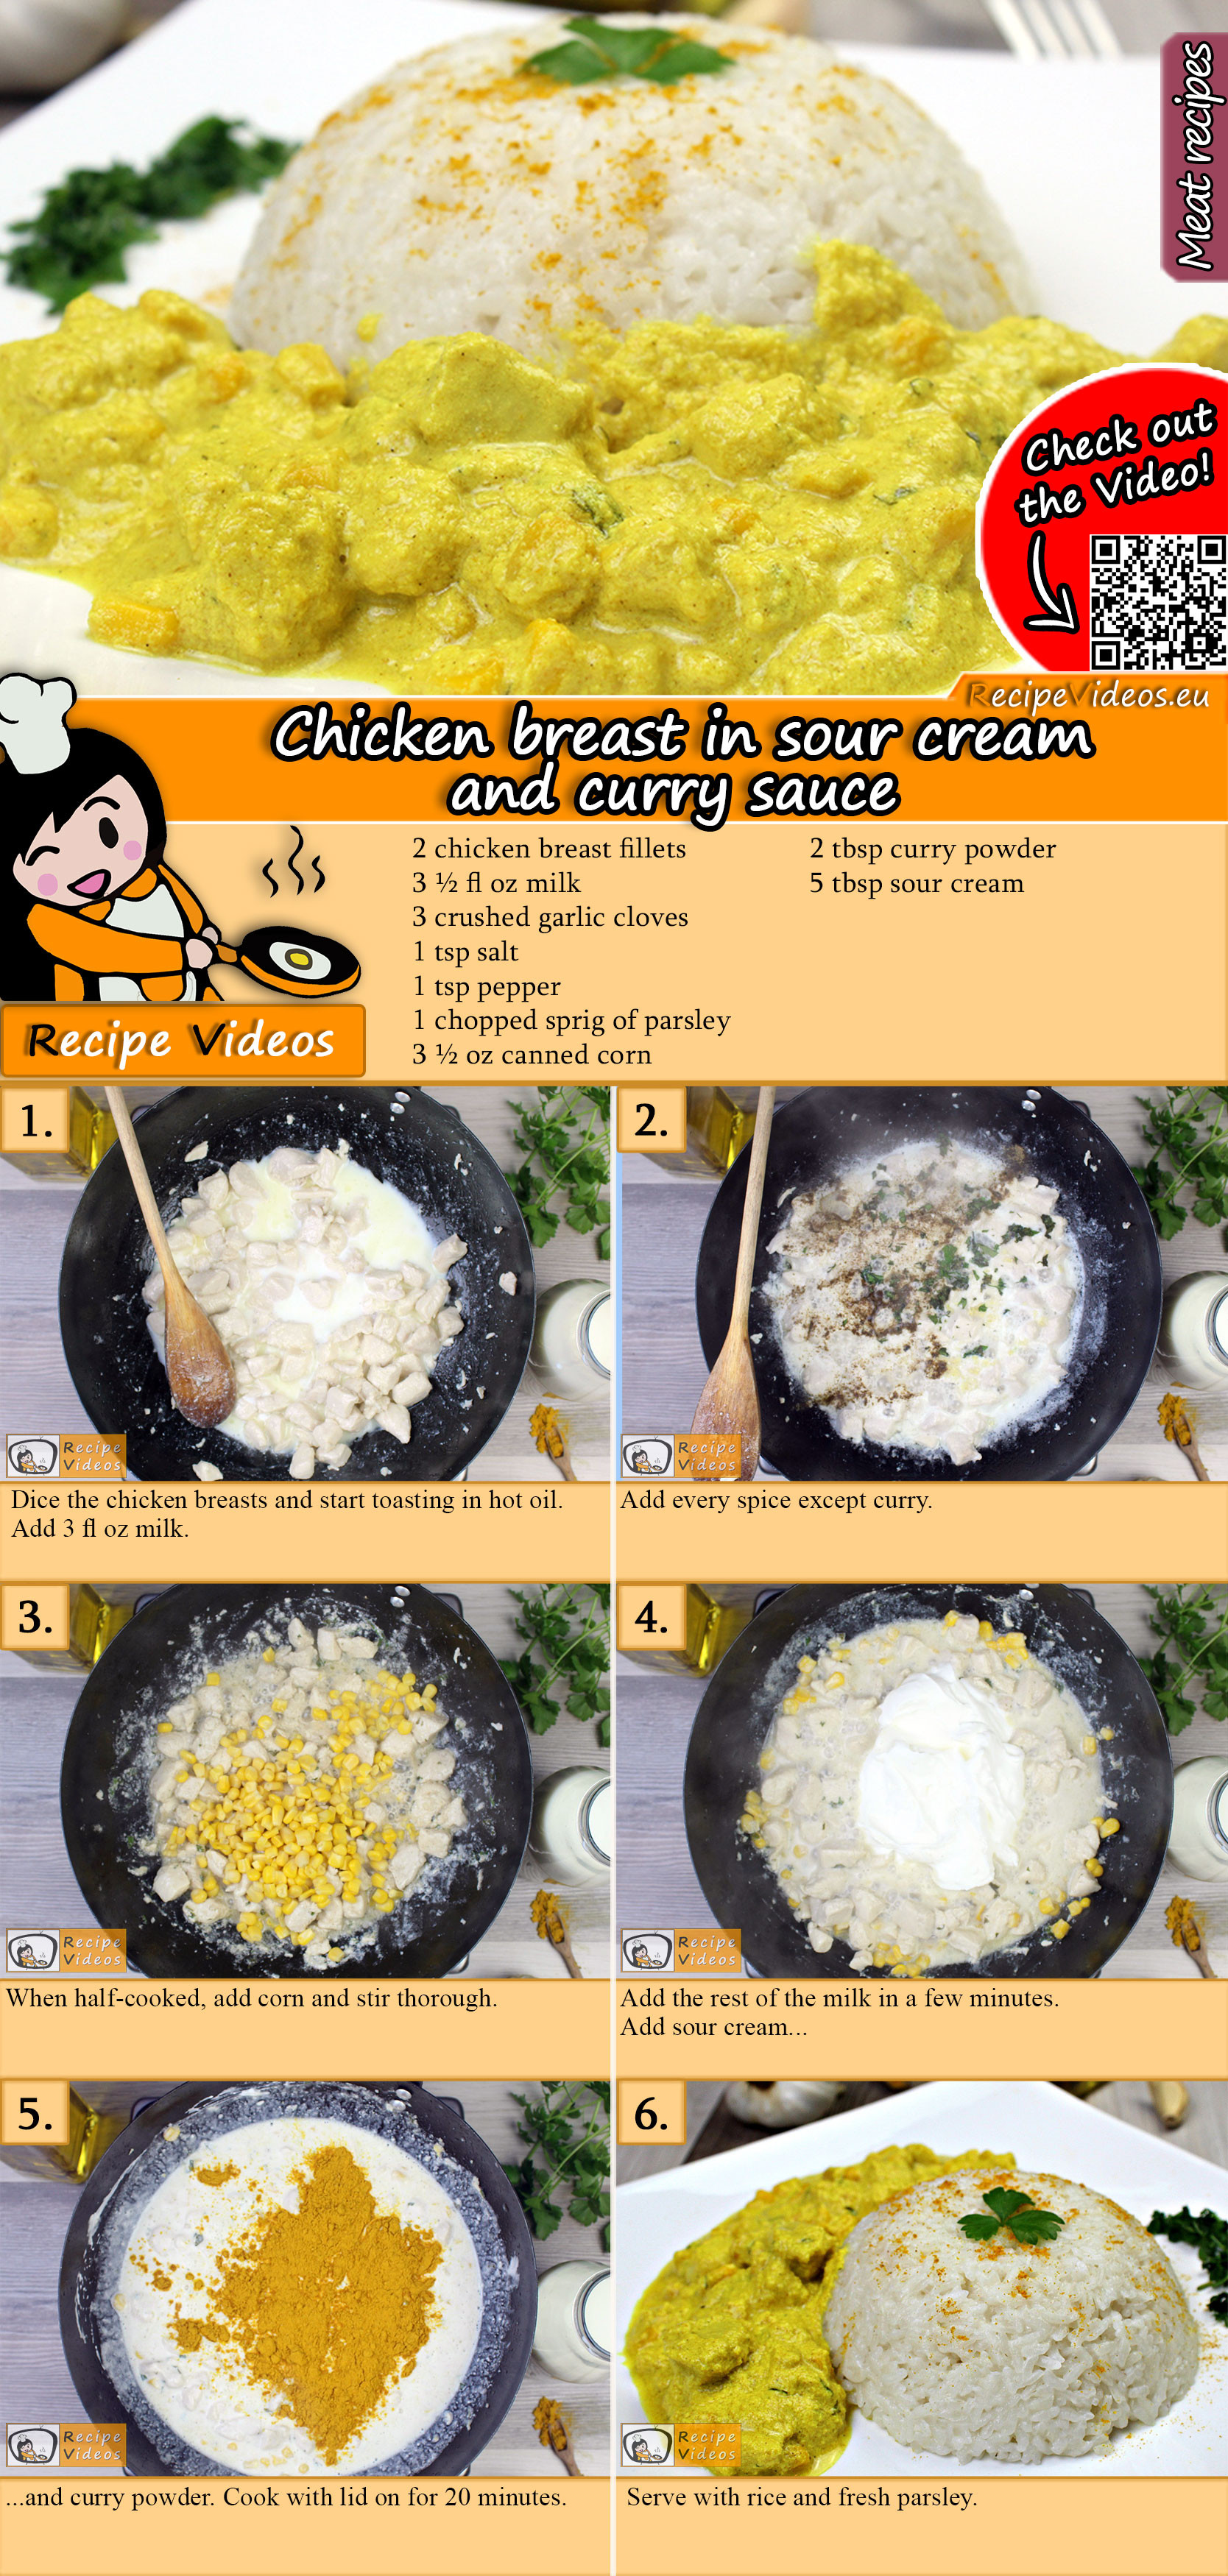 Chicken breast in sour cream and curry sauce recipe with video